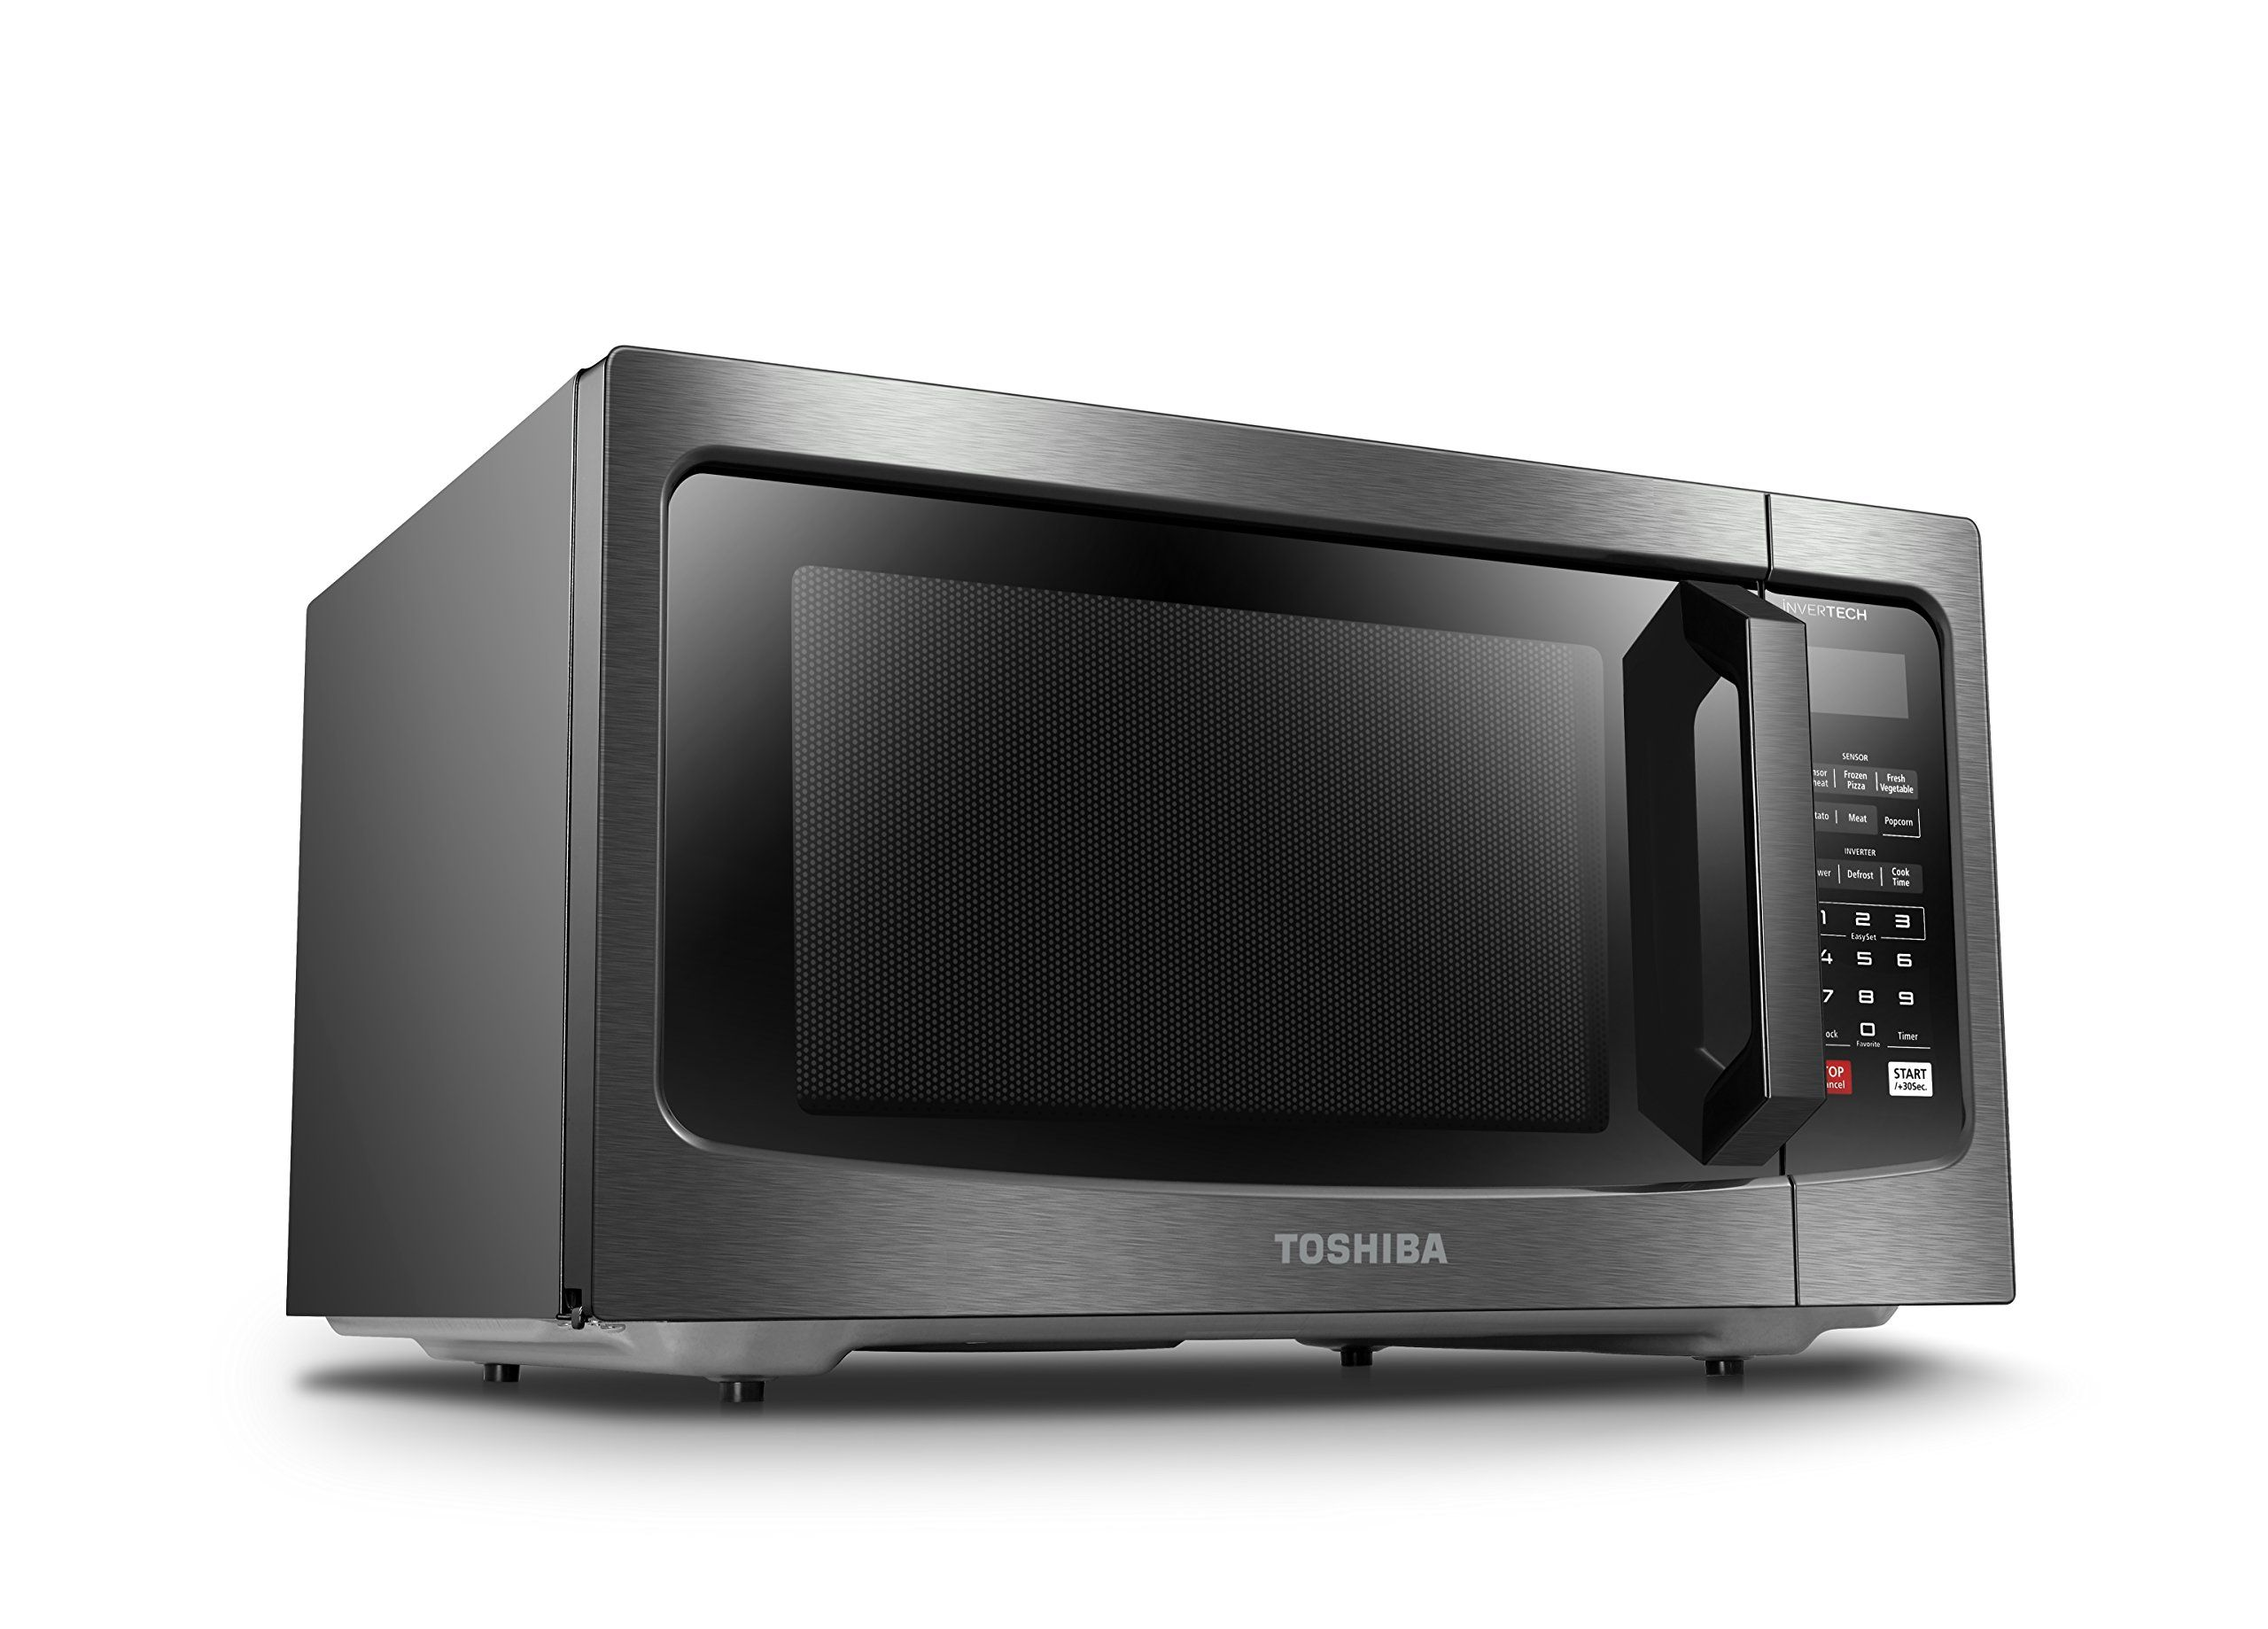 Toshiba Em245a5cbs Microwave Oven With Inverter Technology And